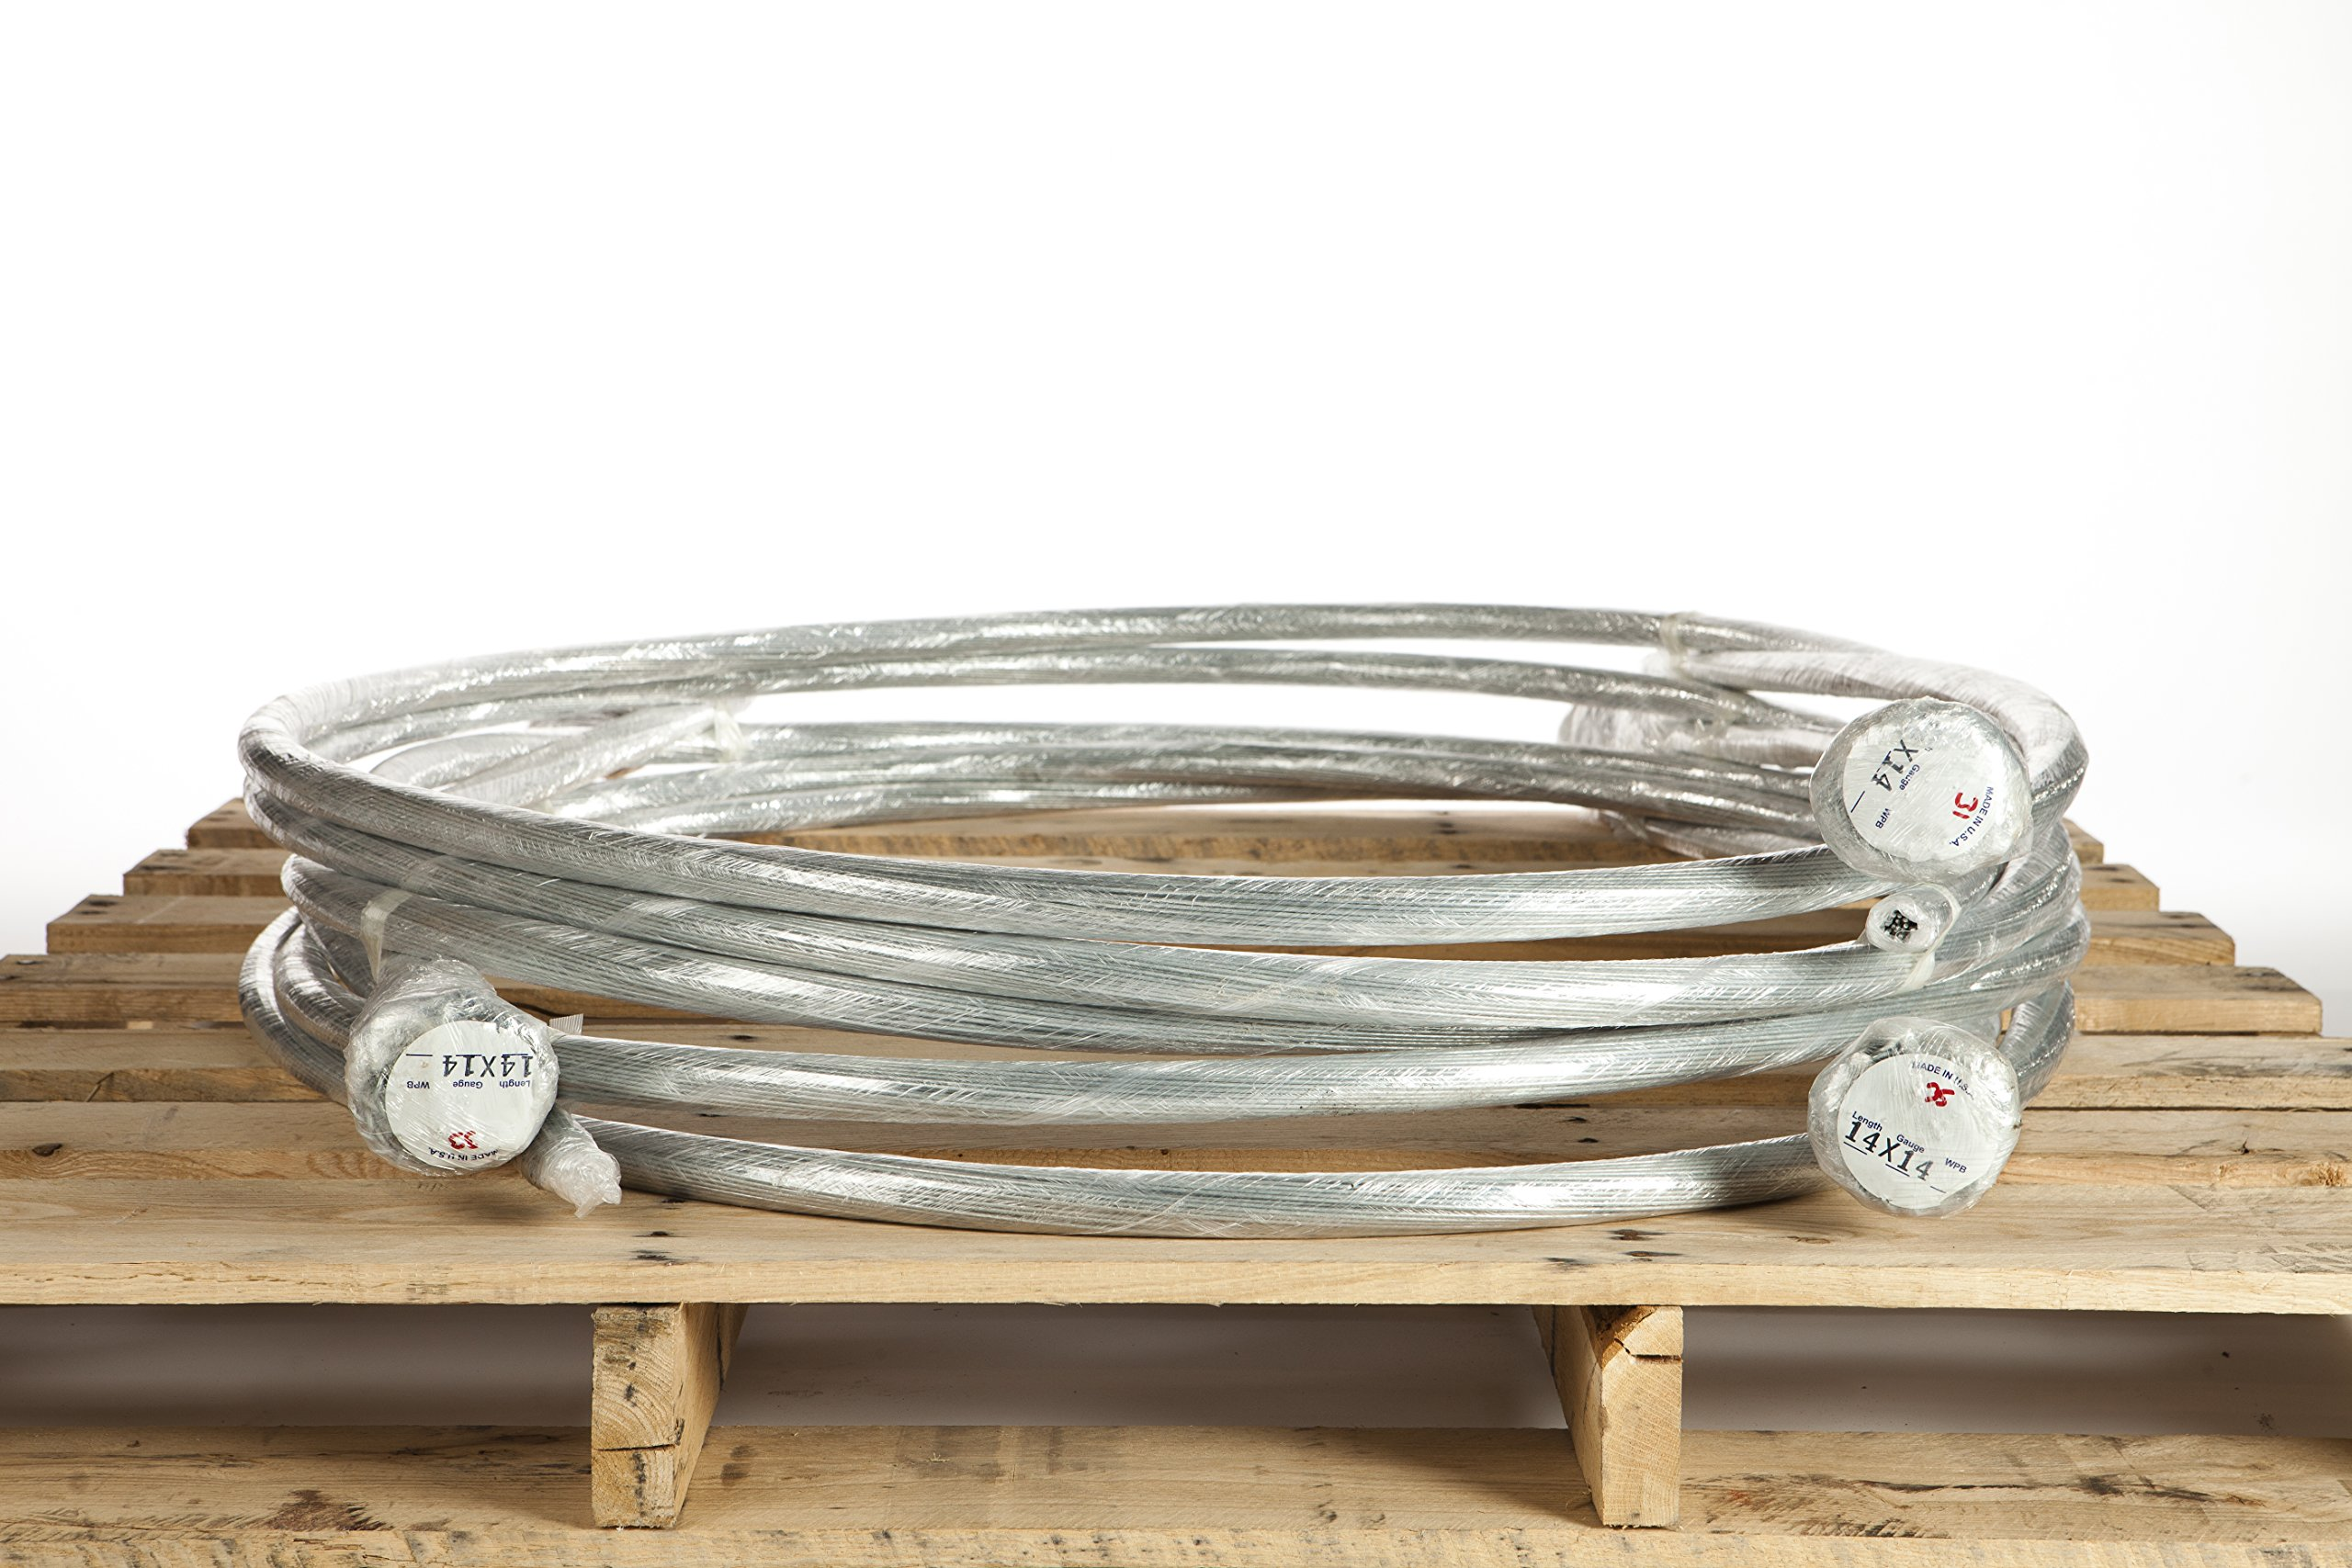 Highest Quality USA Made 14 Gauge 14FT Galvanized Single Loop Baling Wire in Bundles of 125 Pieces by Smart-Ties